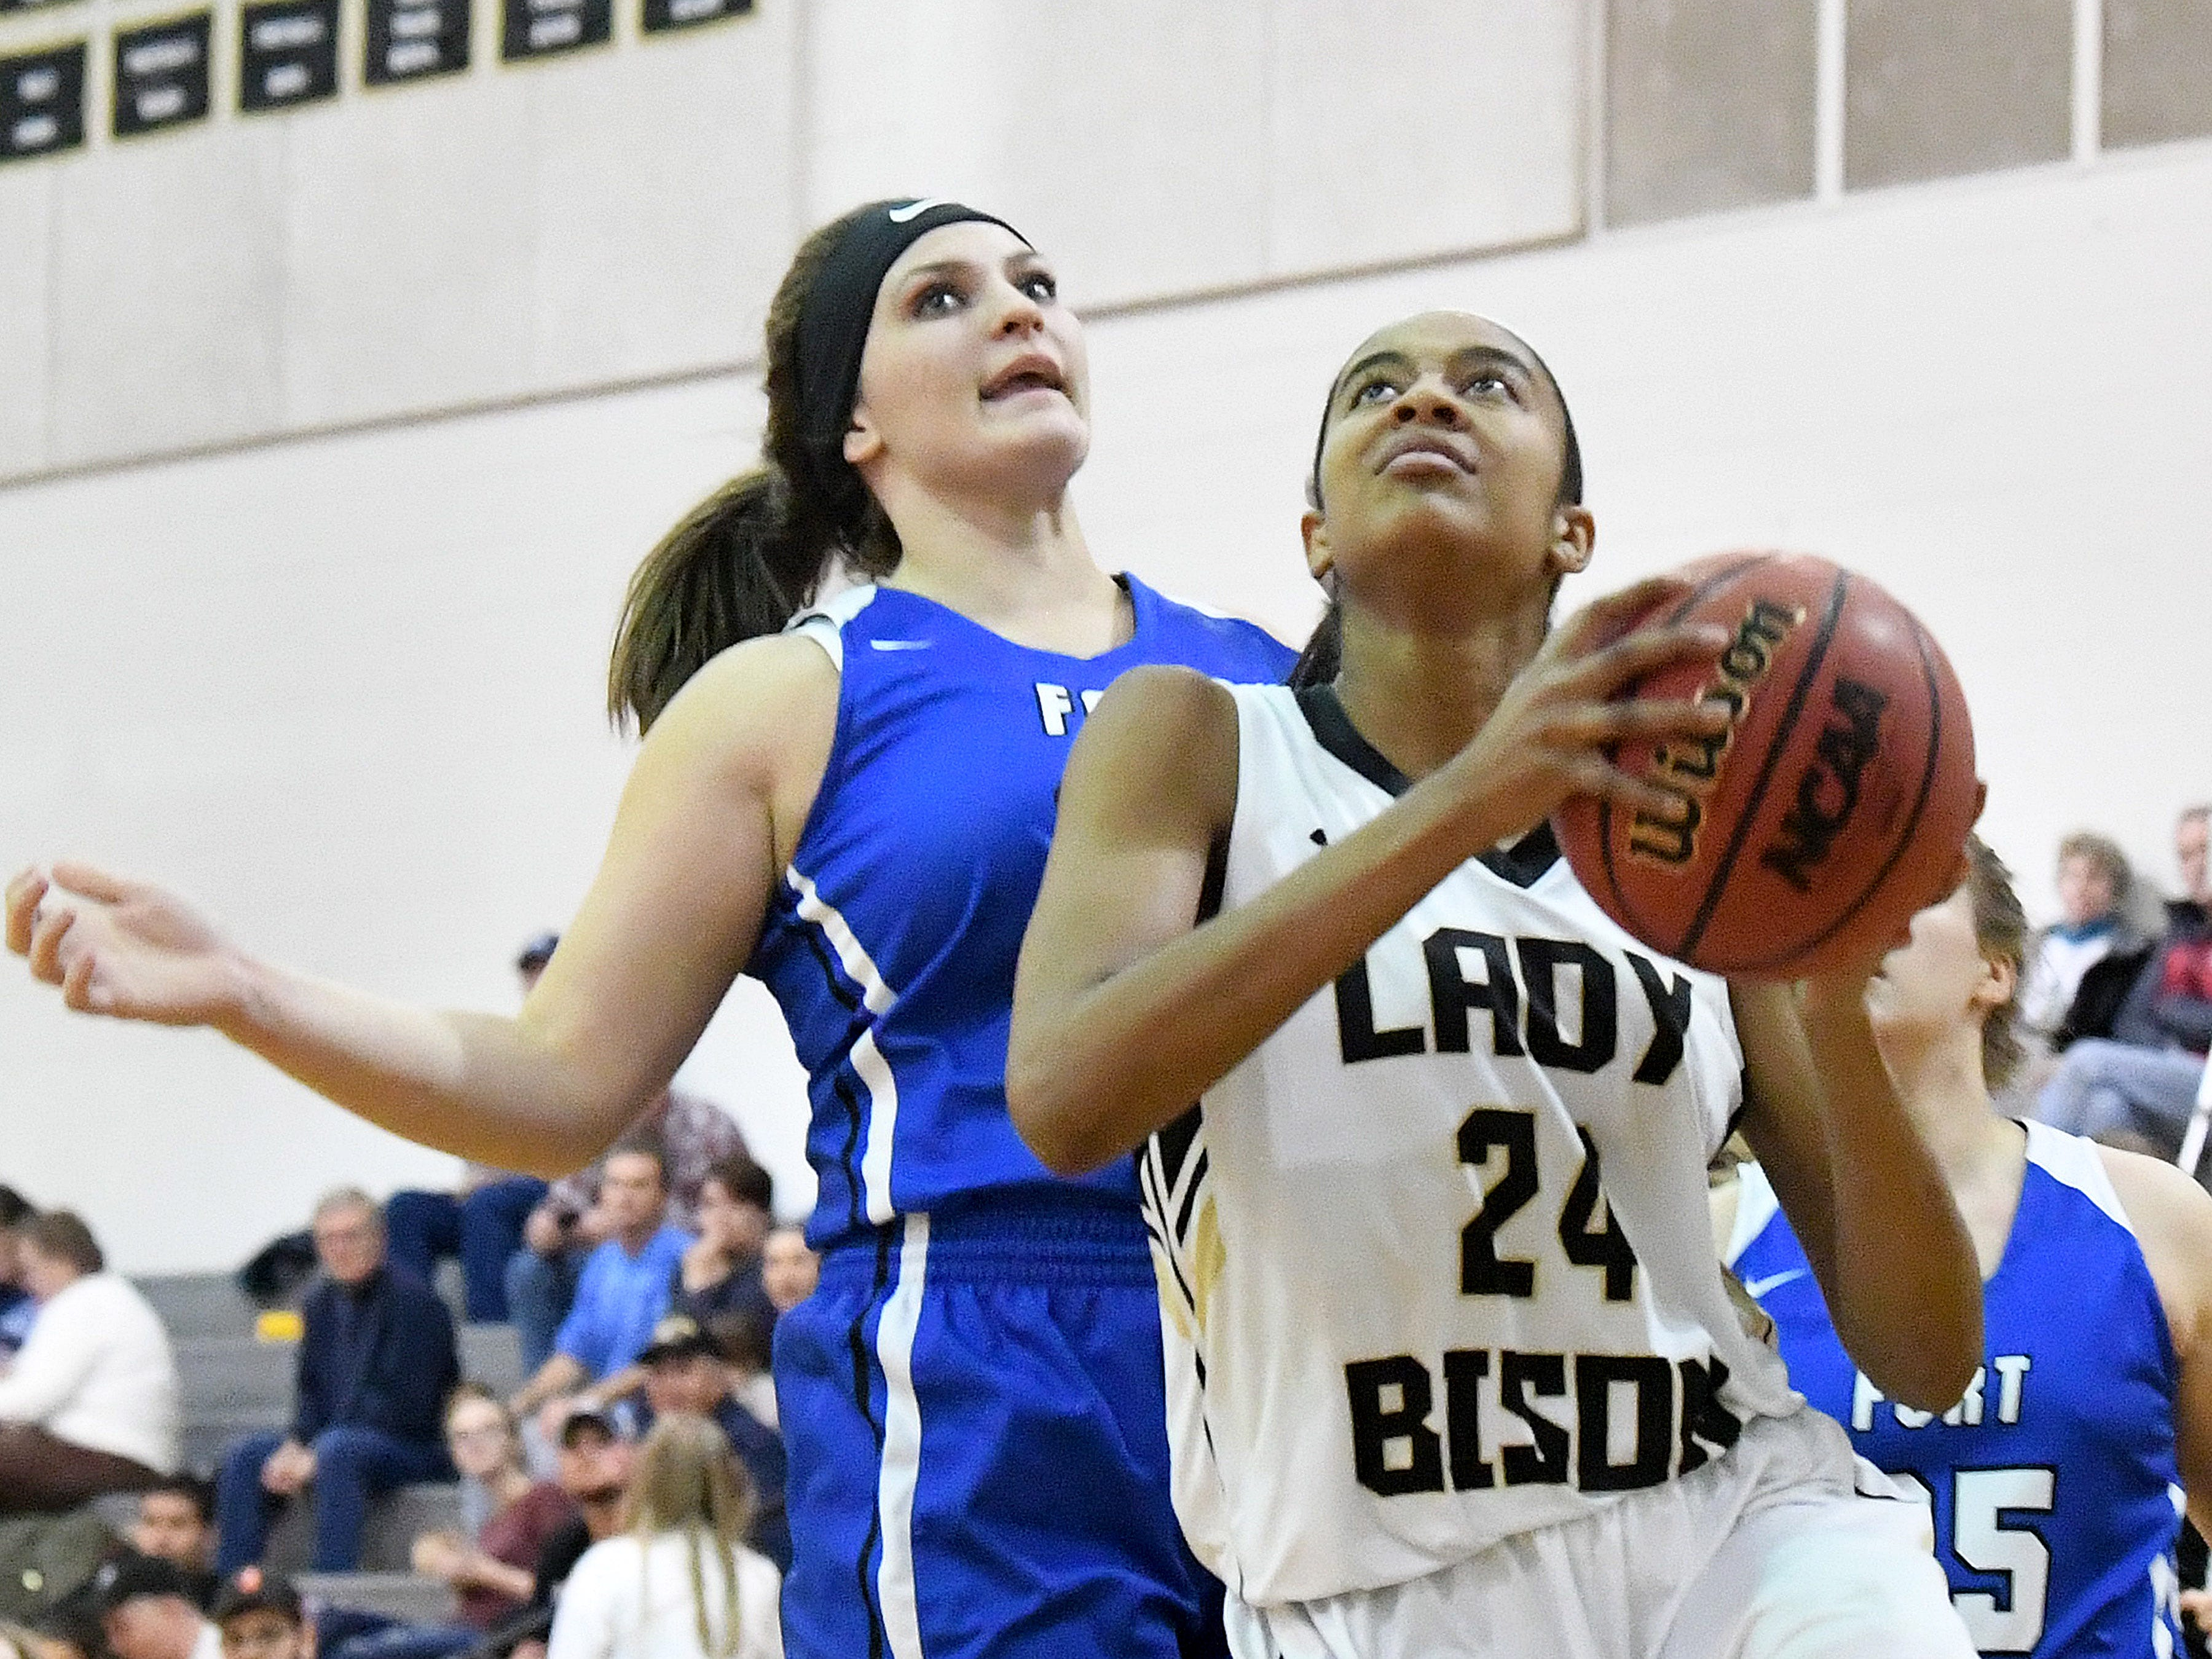 Buffalo Gap's Amaya Lucas looks to the basket to shoot after getting around Fort Defiance's Cailin Wright during a game played in Swoope on Wednesday, Dec. 5, 2018.